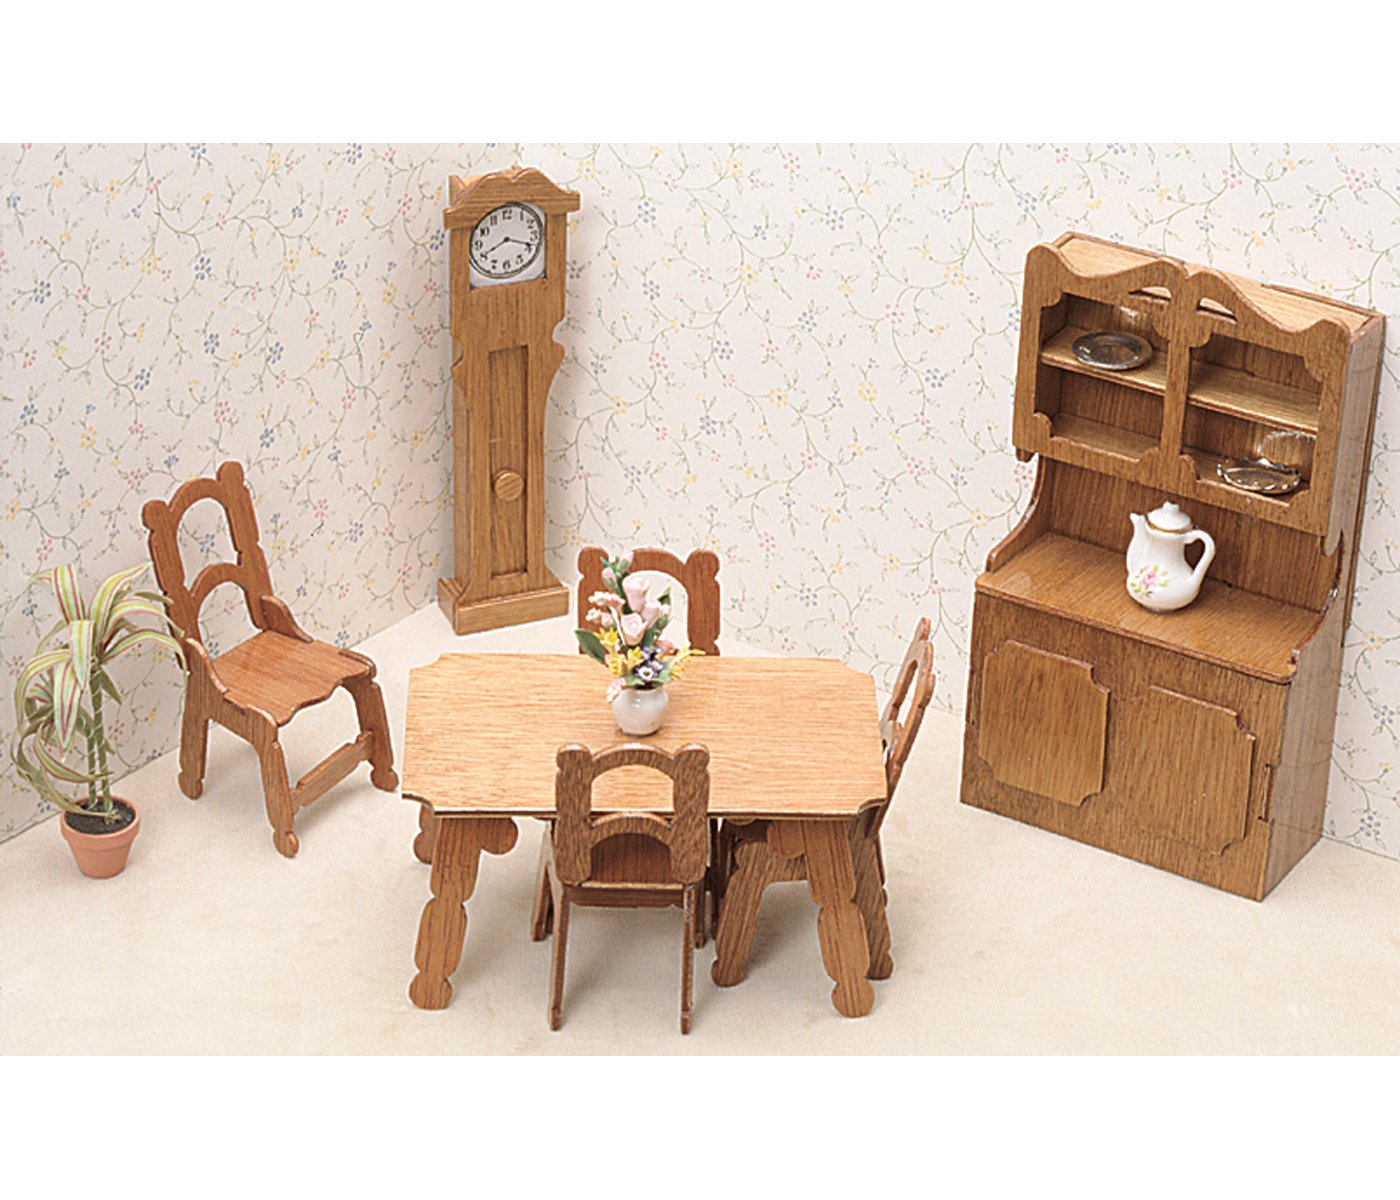 unfinished dollhouse furniture. Dollhouse Furniture Diy. Diy . Unfinished T